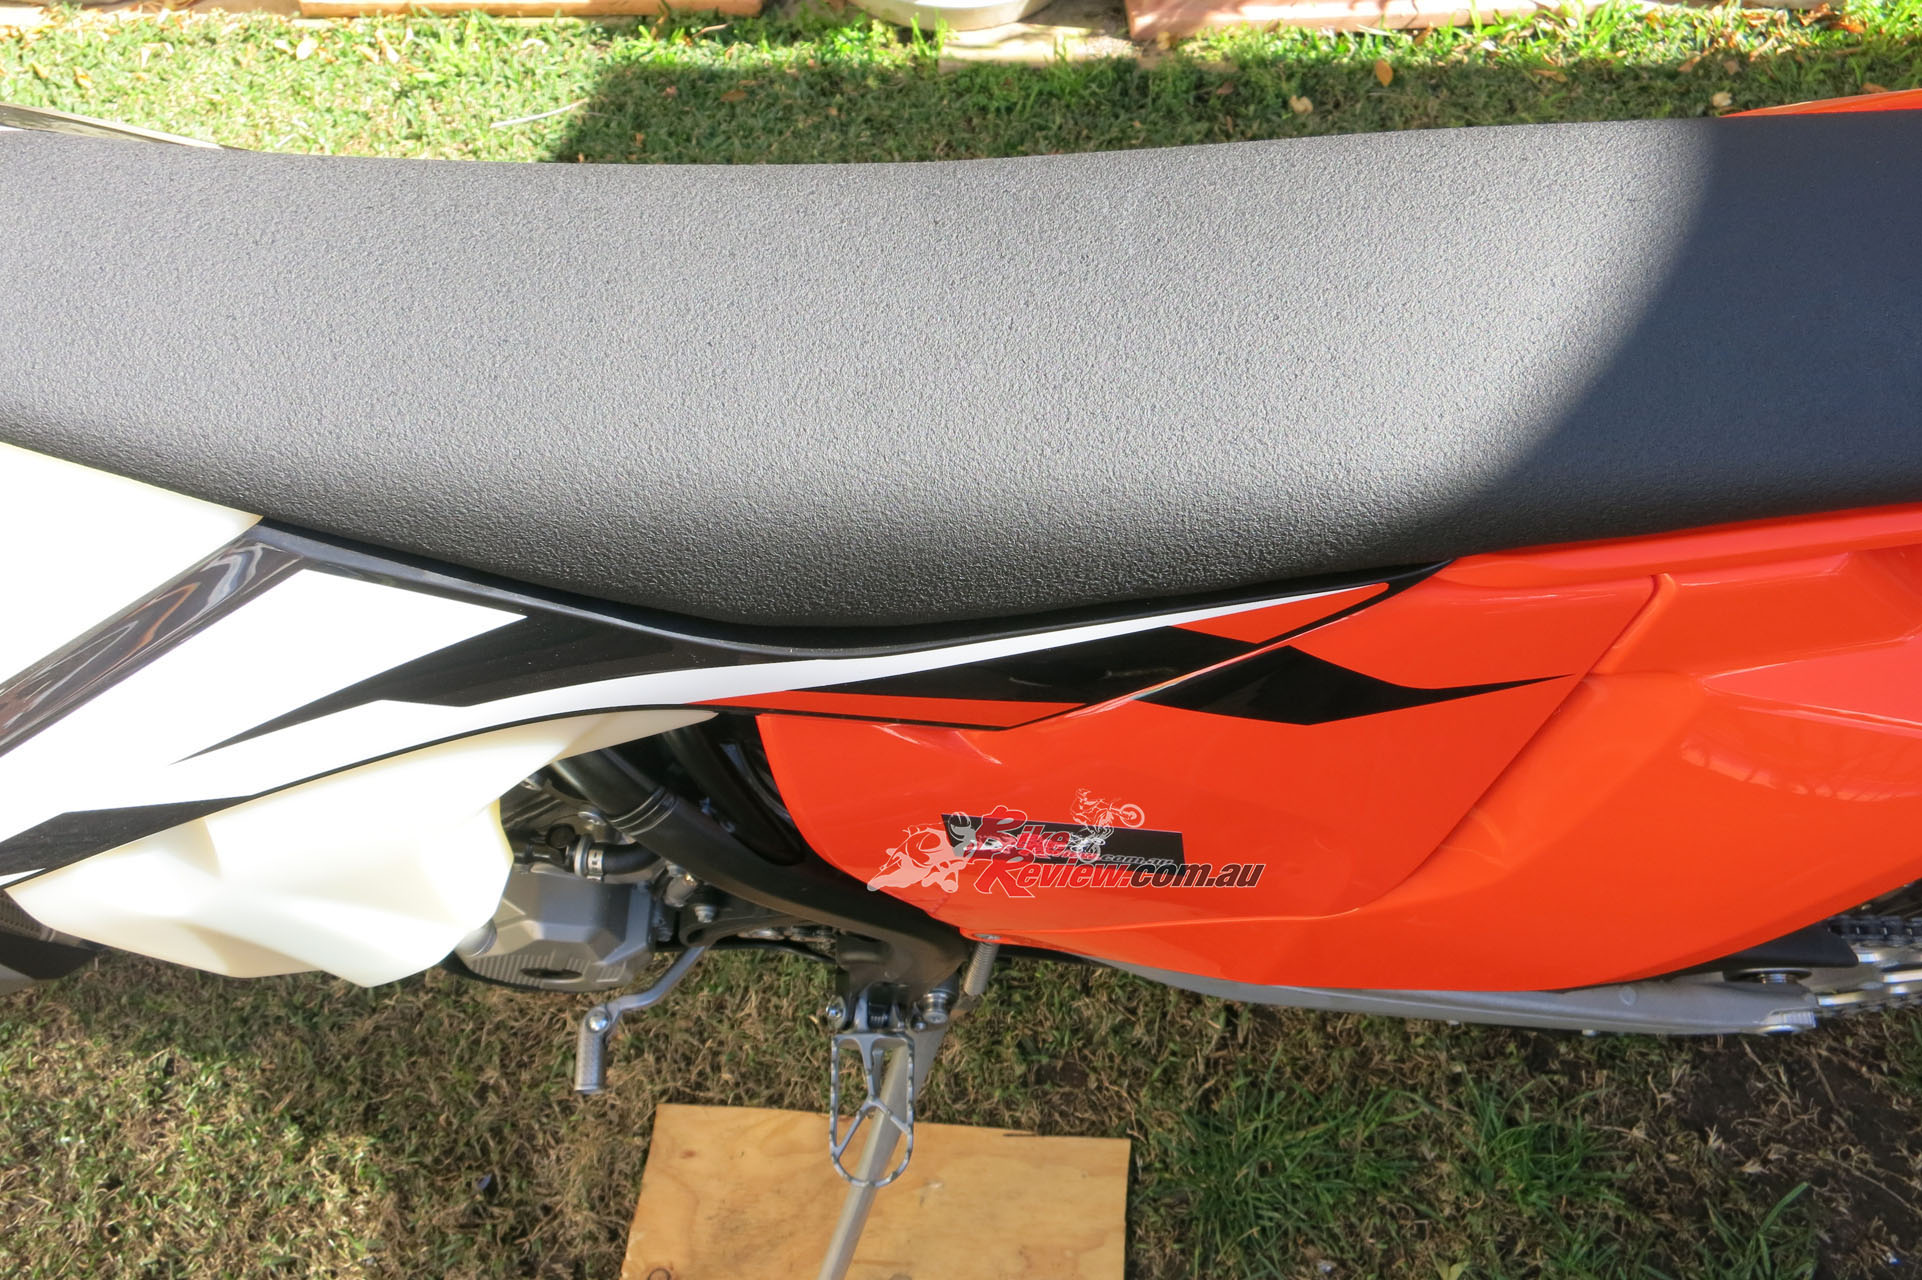 The 350 EXC-F's seat is more slippery than what Mark is used to but he runs a Selle Dalla Valle seat cover from KTM